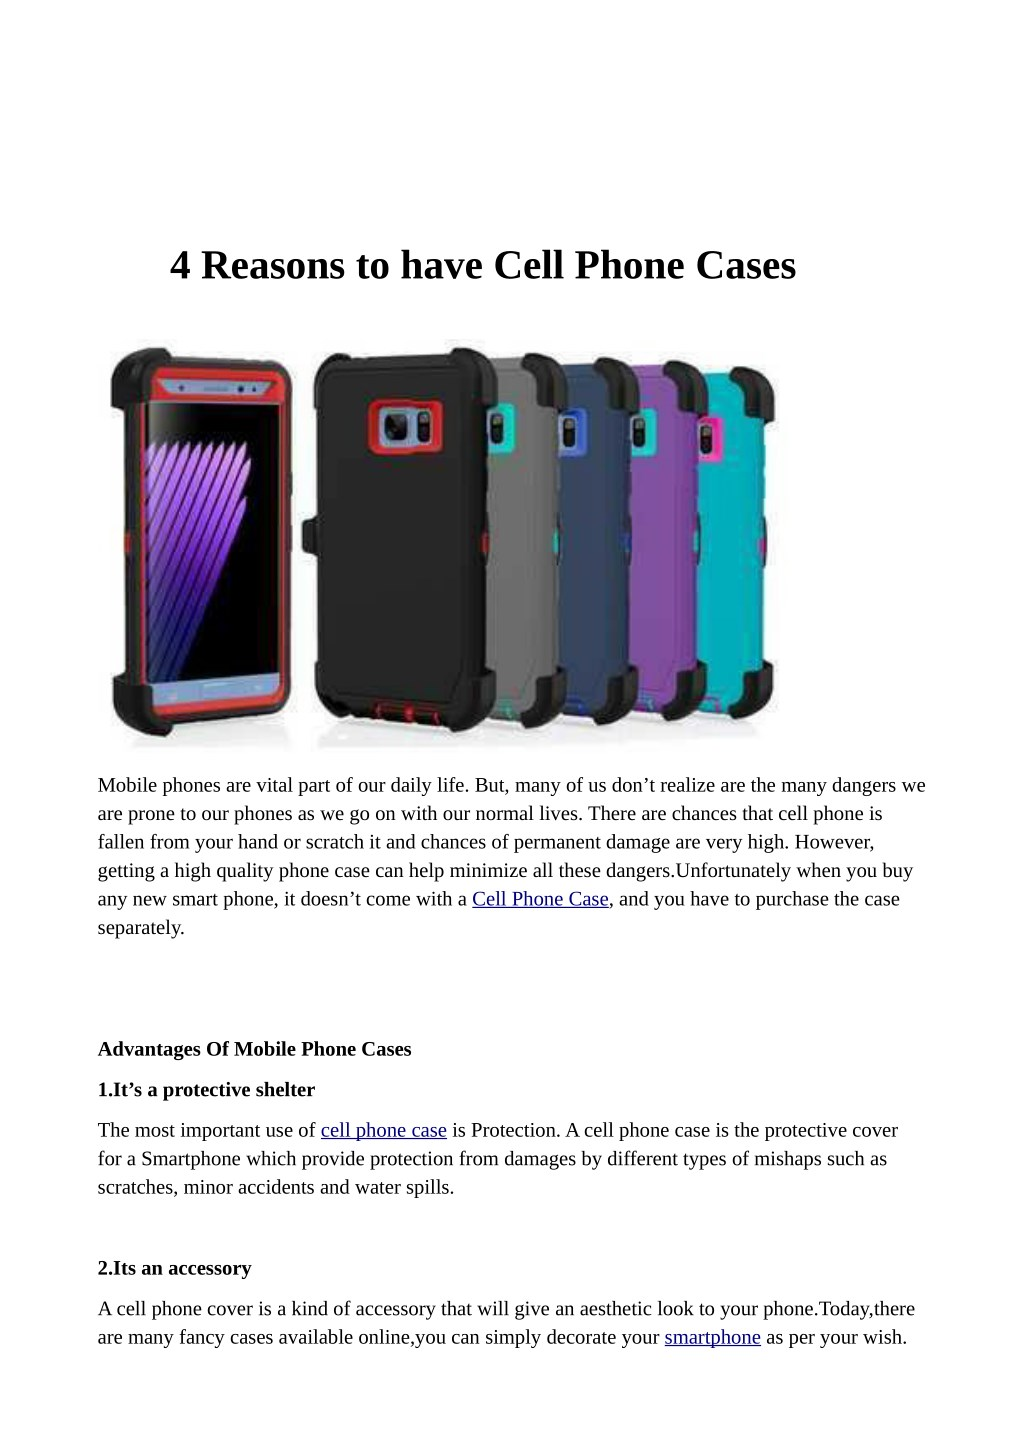 Ppt 4 Reasons To Have Cell Phone Cases Powerpoint Presentation Free Download Id 7754221